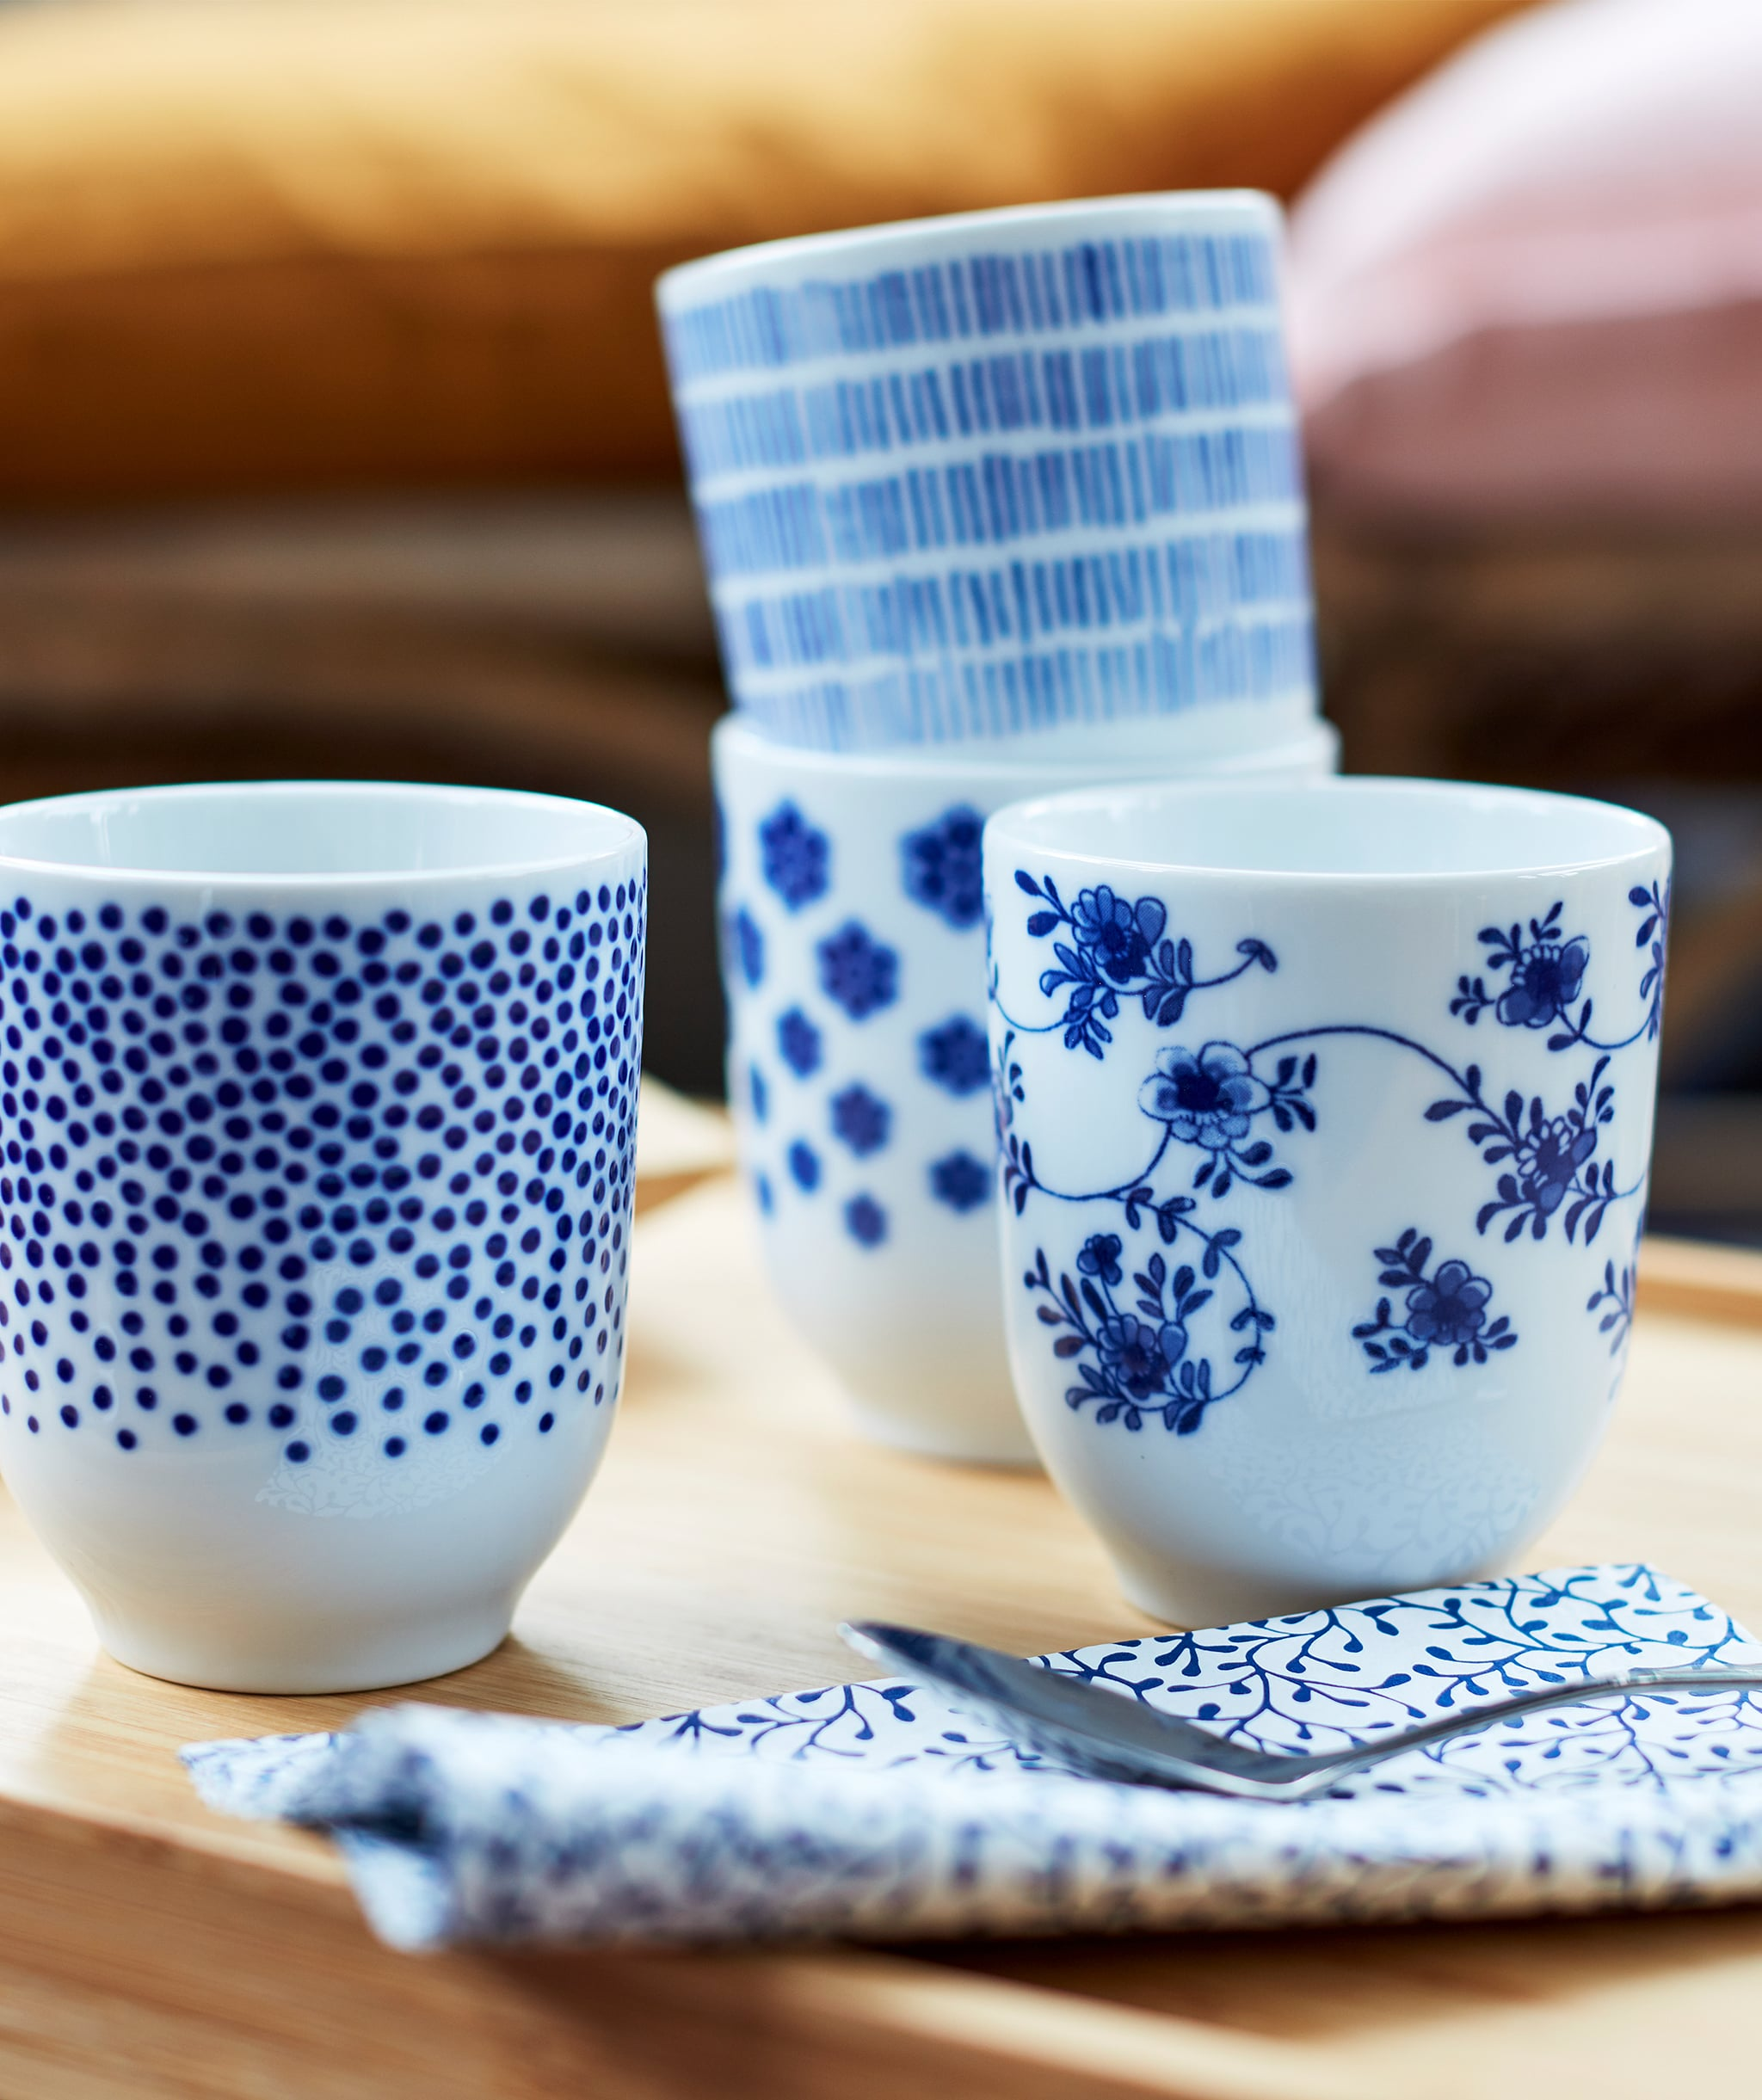 Four small tea mugs in white, decorated with different patterns in dark blue.